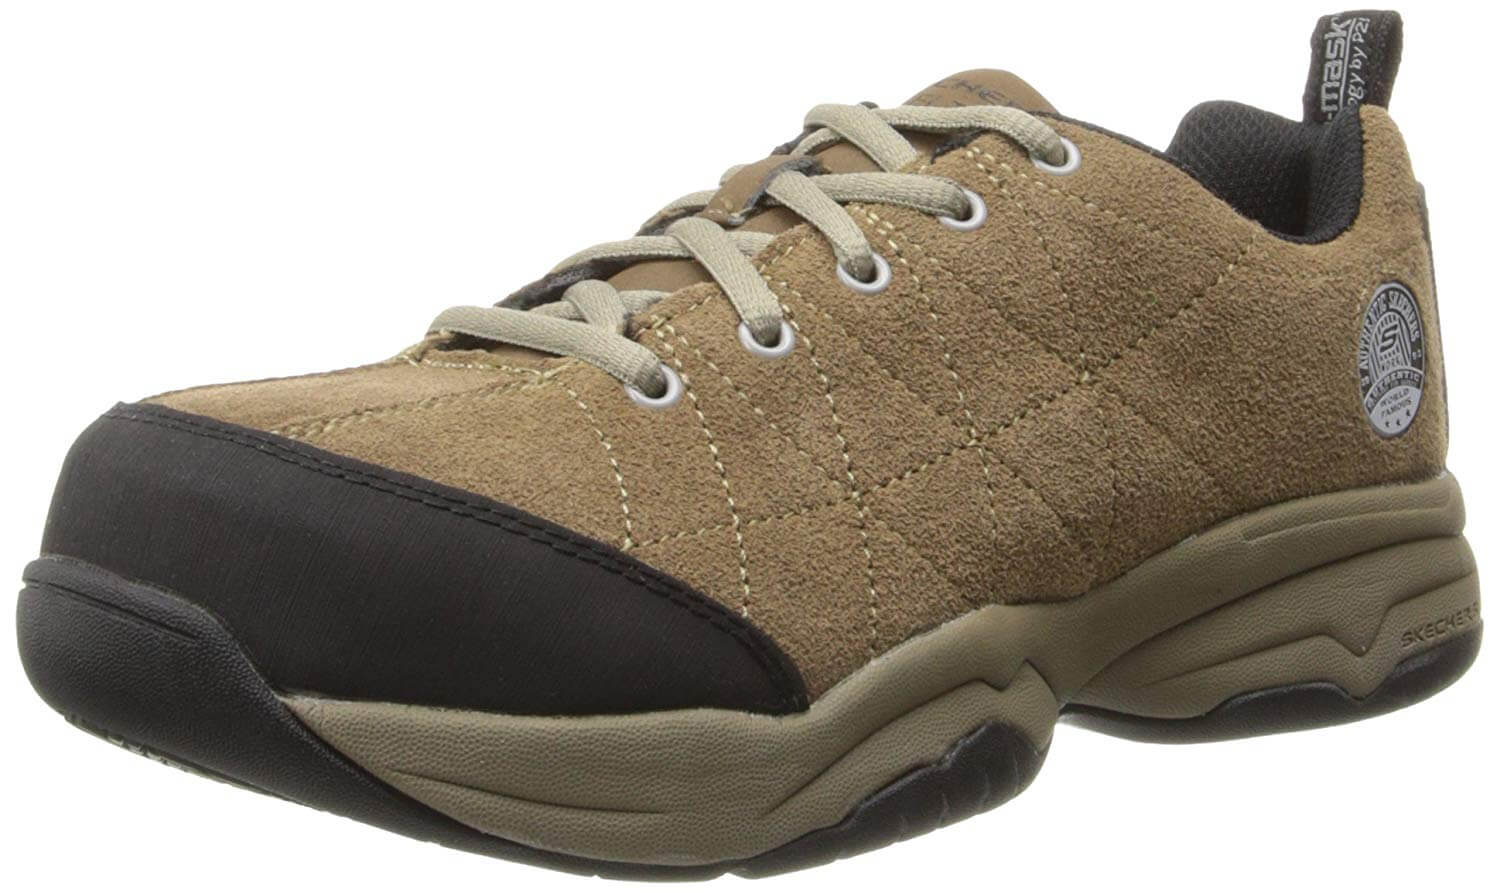 dafd0ff635b8 Other comfort features include a padded collar and tongue and soft fabric  shoe lining. Coming in black and white color and tested with the ASTM  F2412-05 ...